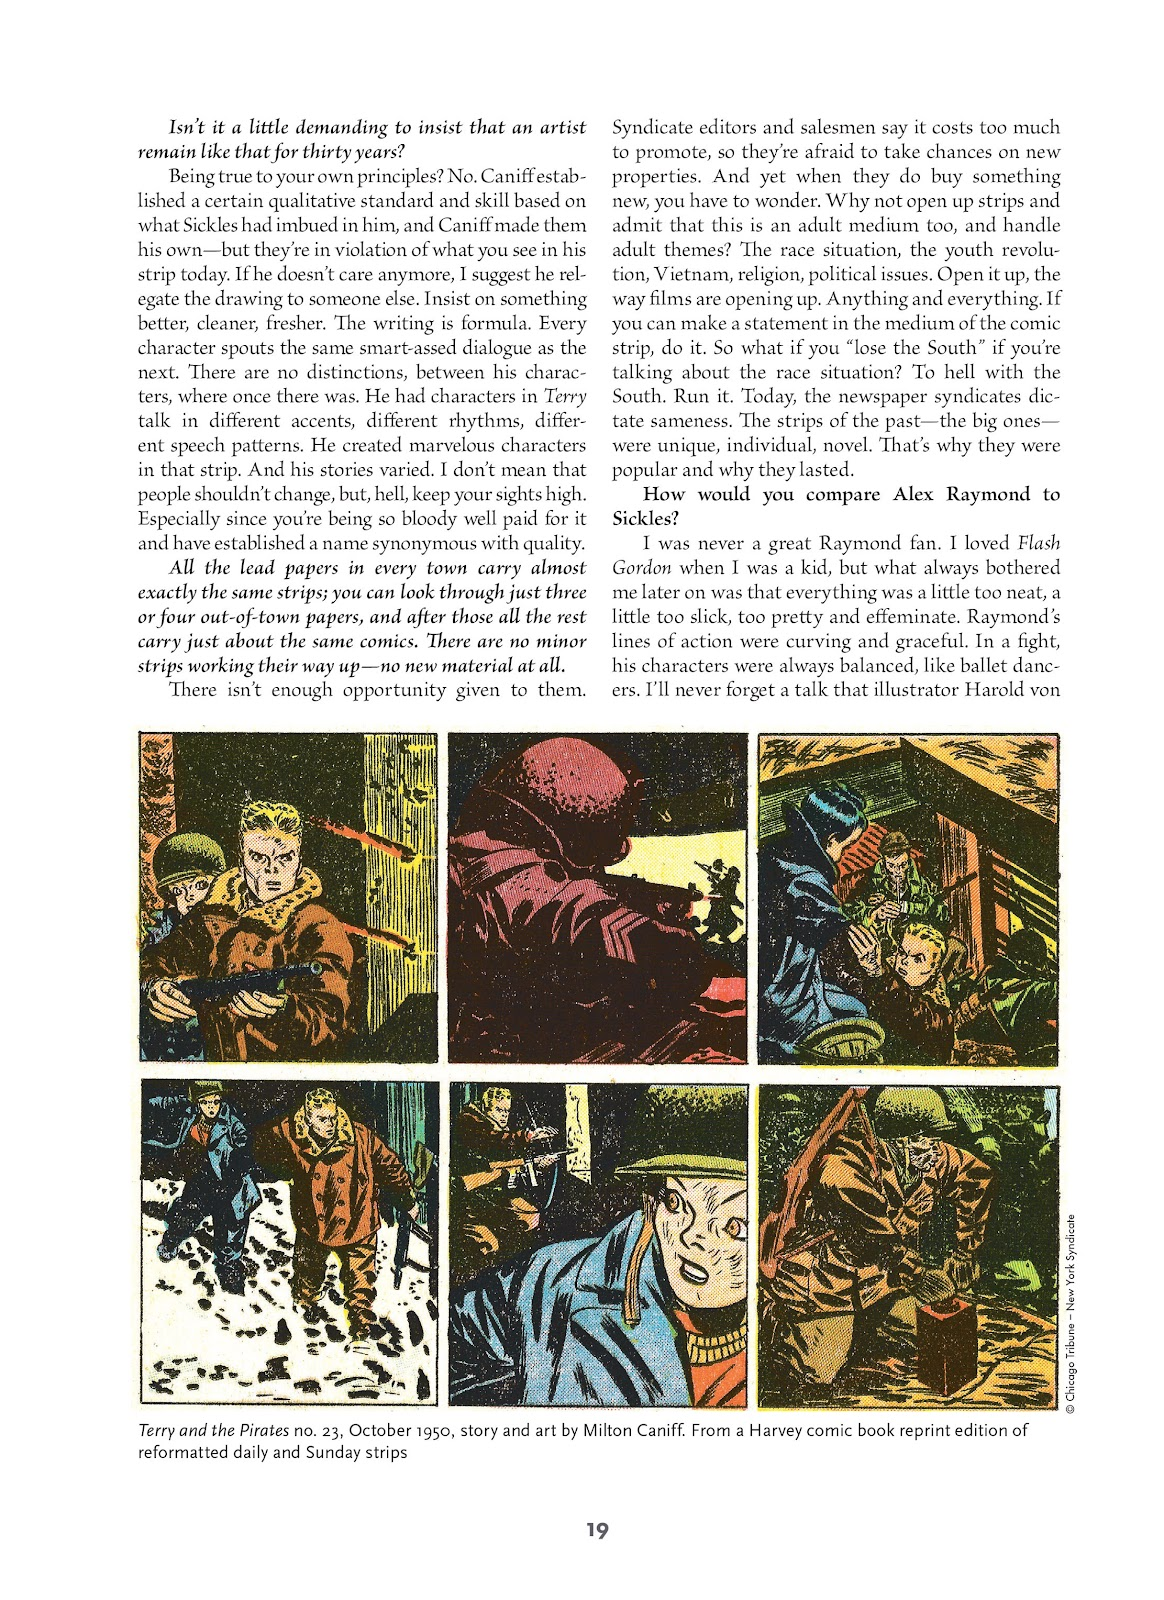 Read online Setting the Standard: Comics by Alex Toth 1952-1954 comic -  Issue # TPB (Part 1) - 18